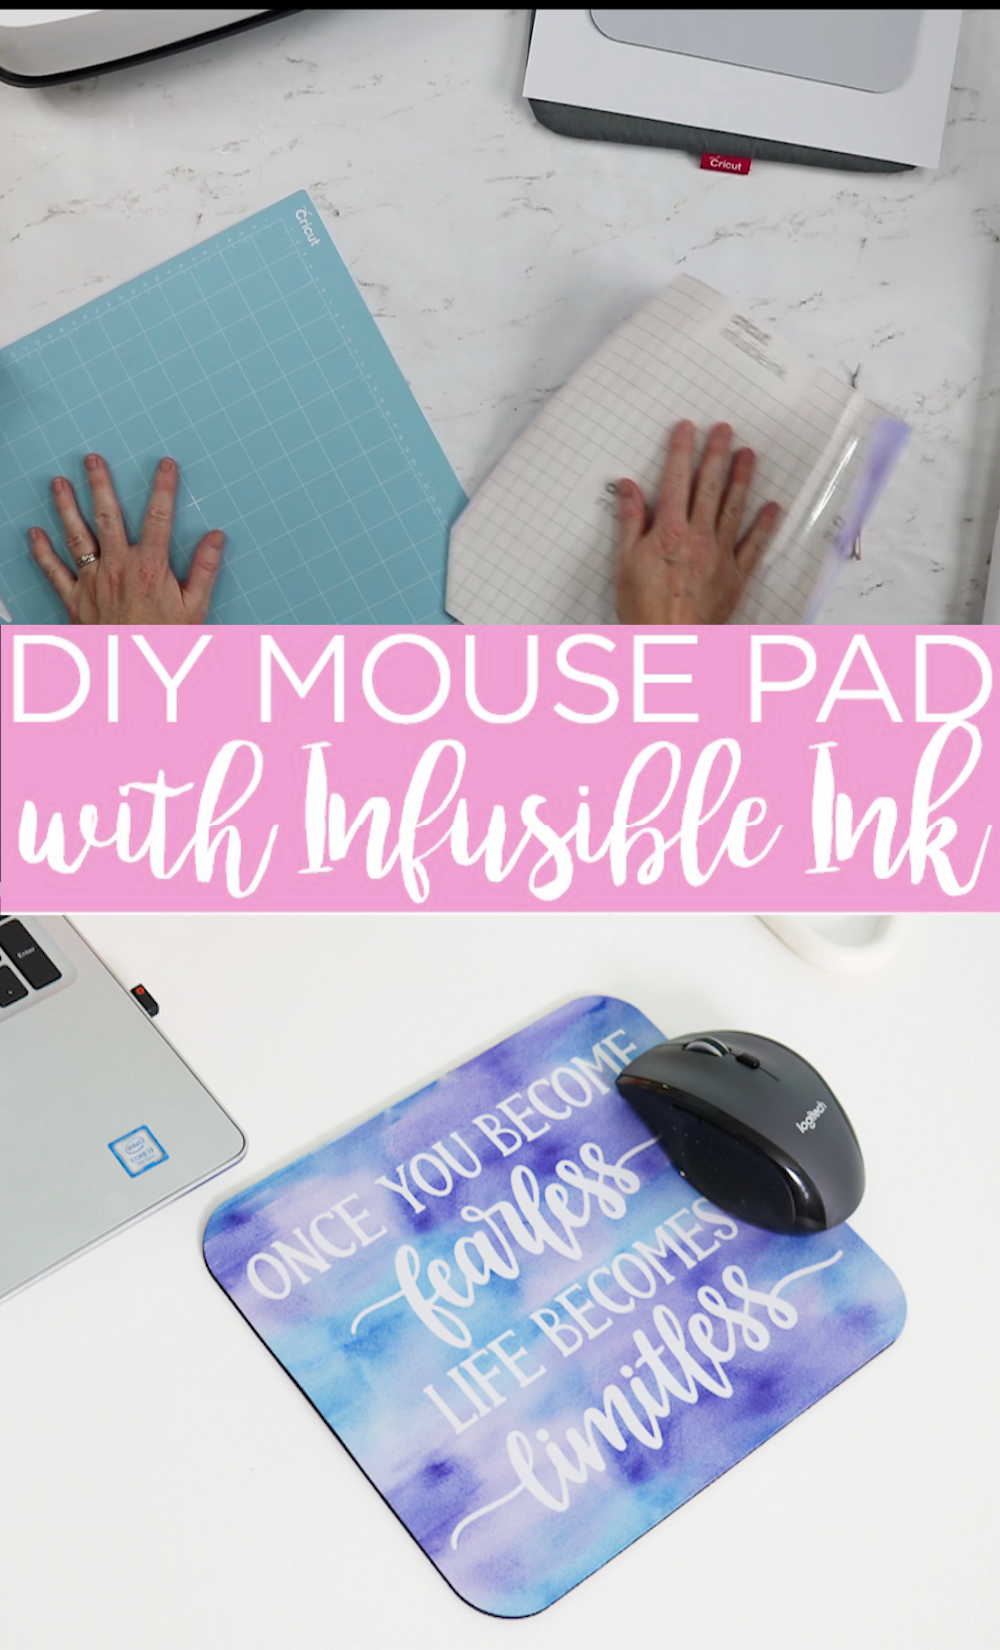 Did you know that you can use Cricut Infusible Ink to make a DIY mouse pad? The process is super simple and permanent! This is a great way to spruce up your office! #office #cricut #cricutcreated #mousepad #infusibleink #cricutinfusible ink #cricutcrafts #cricutprojects